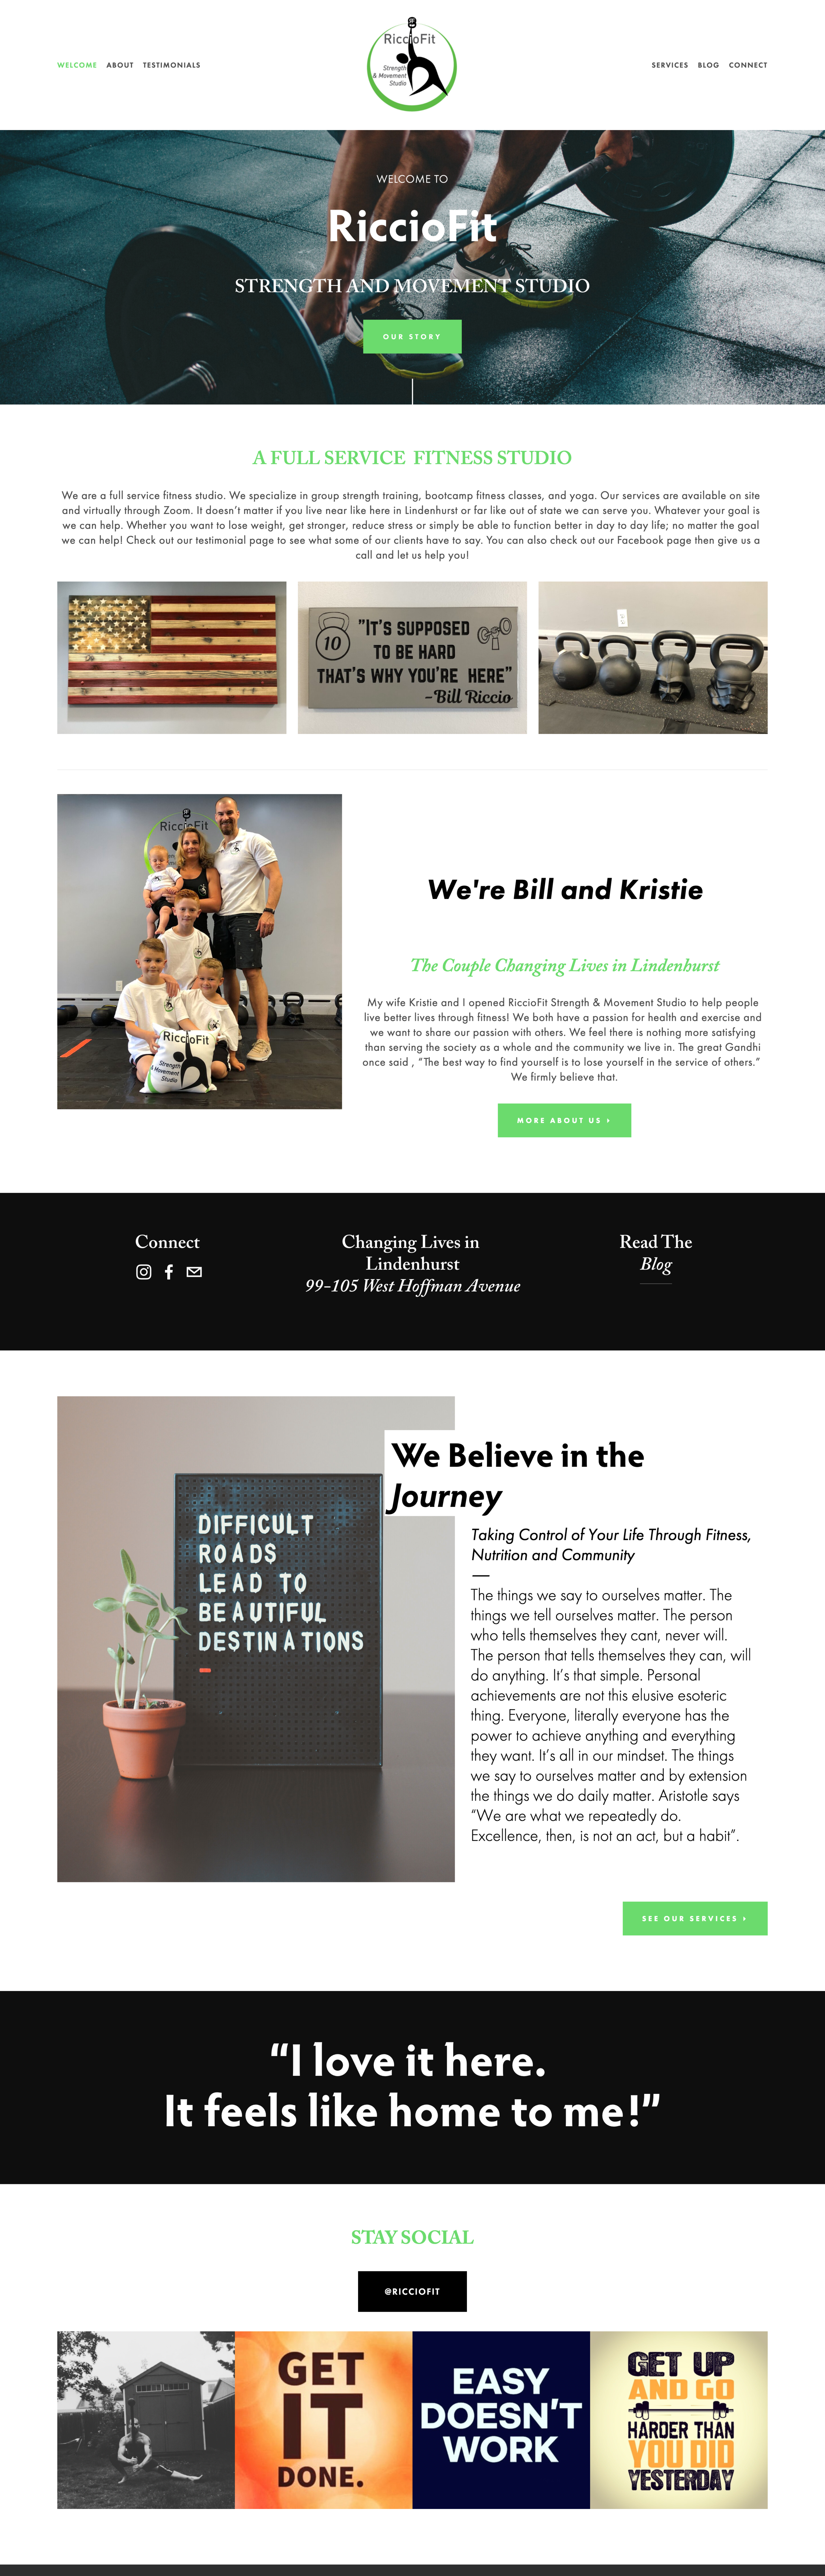 Riccio Fit - Emily R. Fitzgibbon, LLC - Web Design